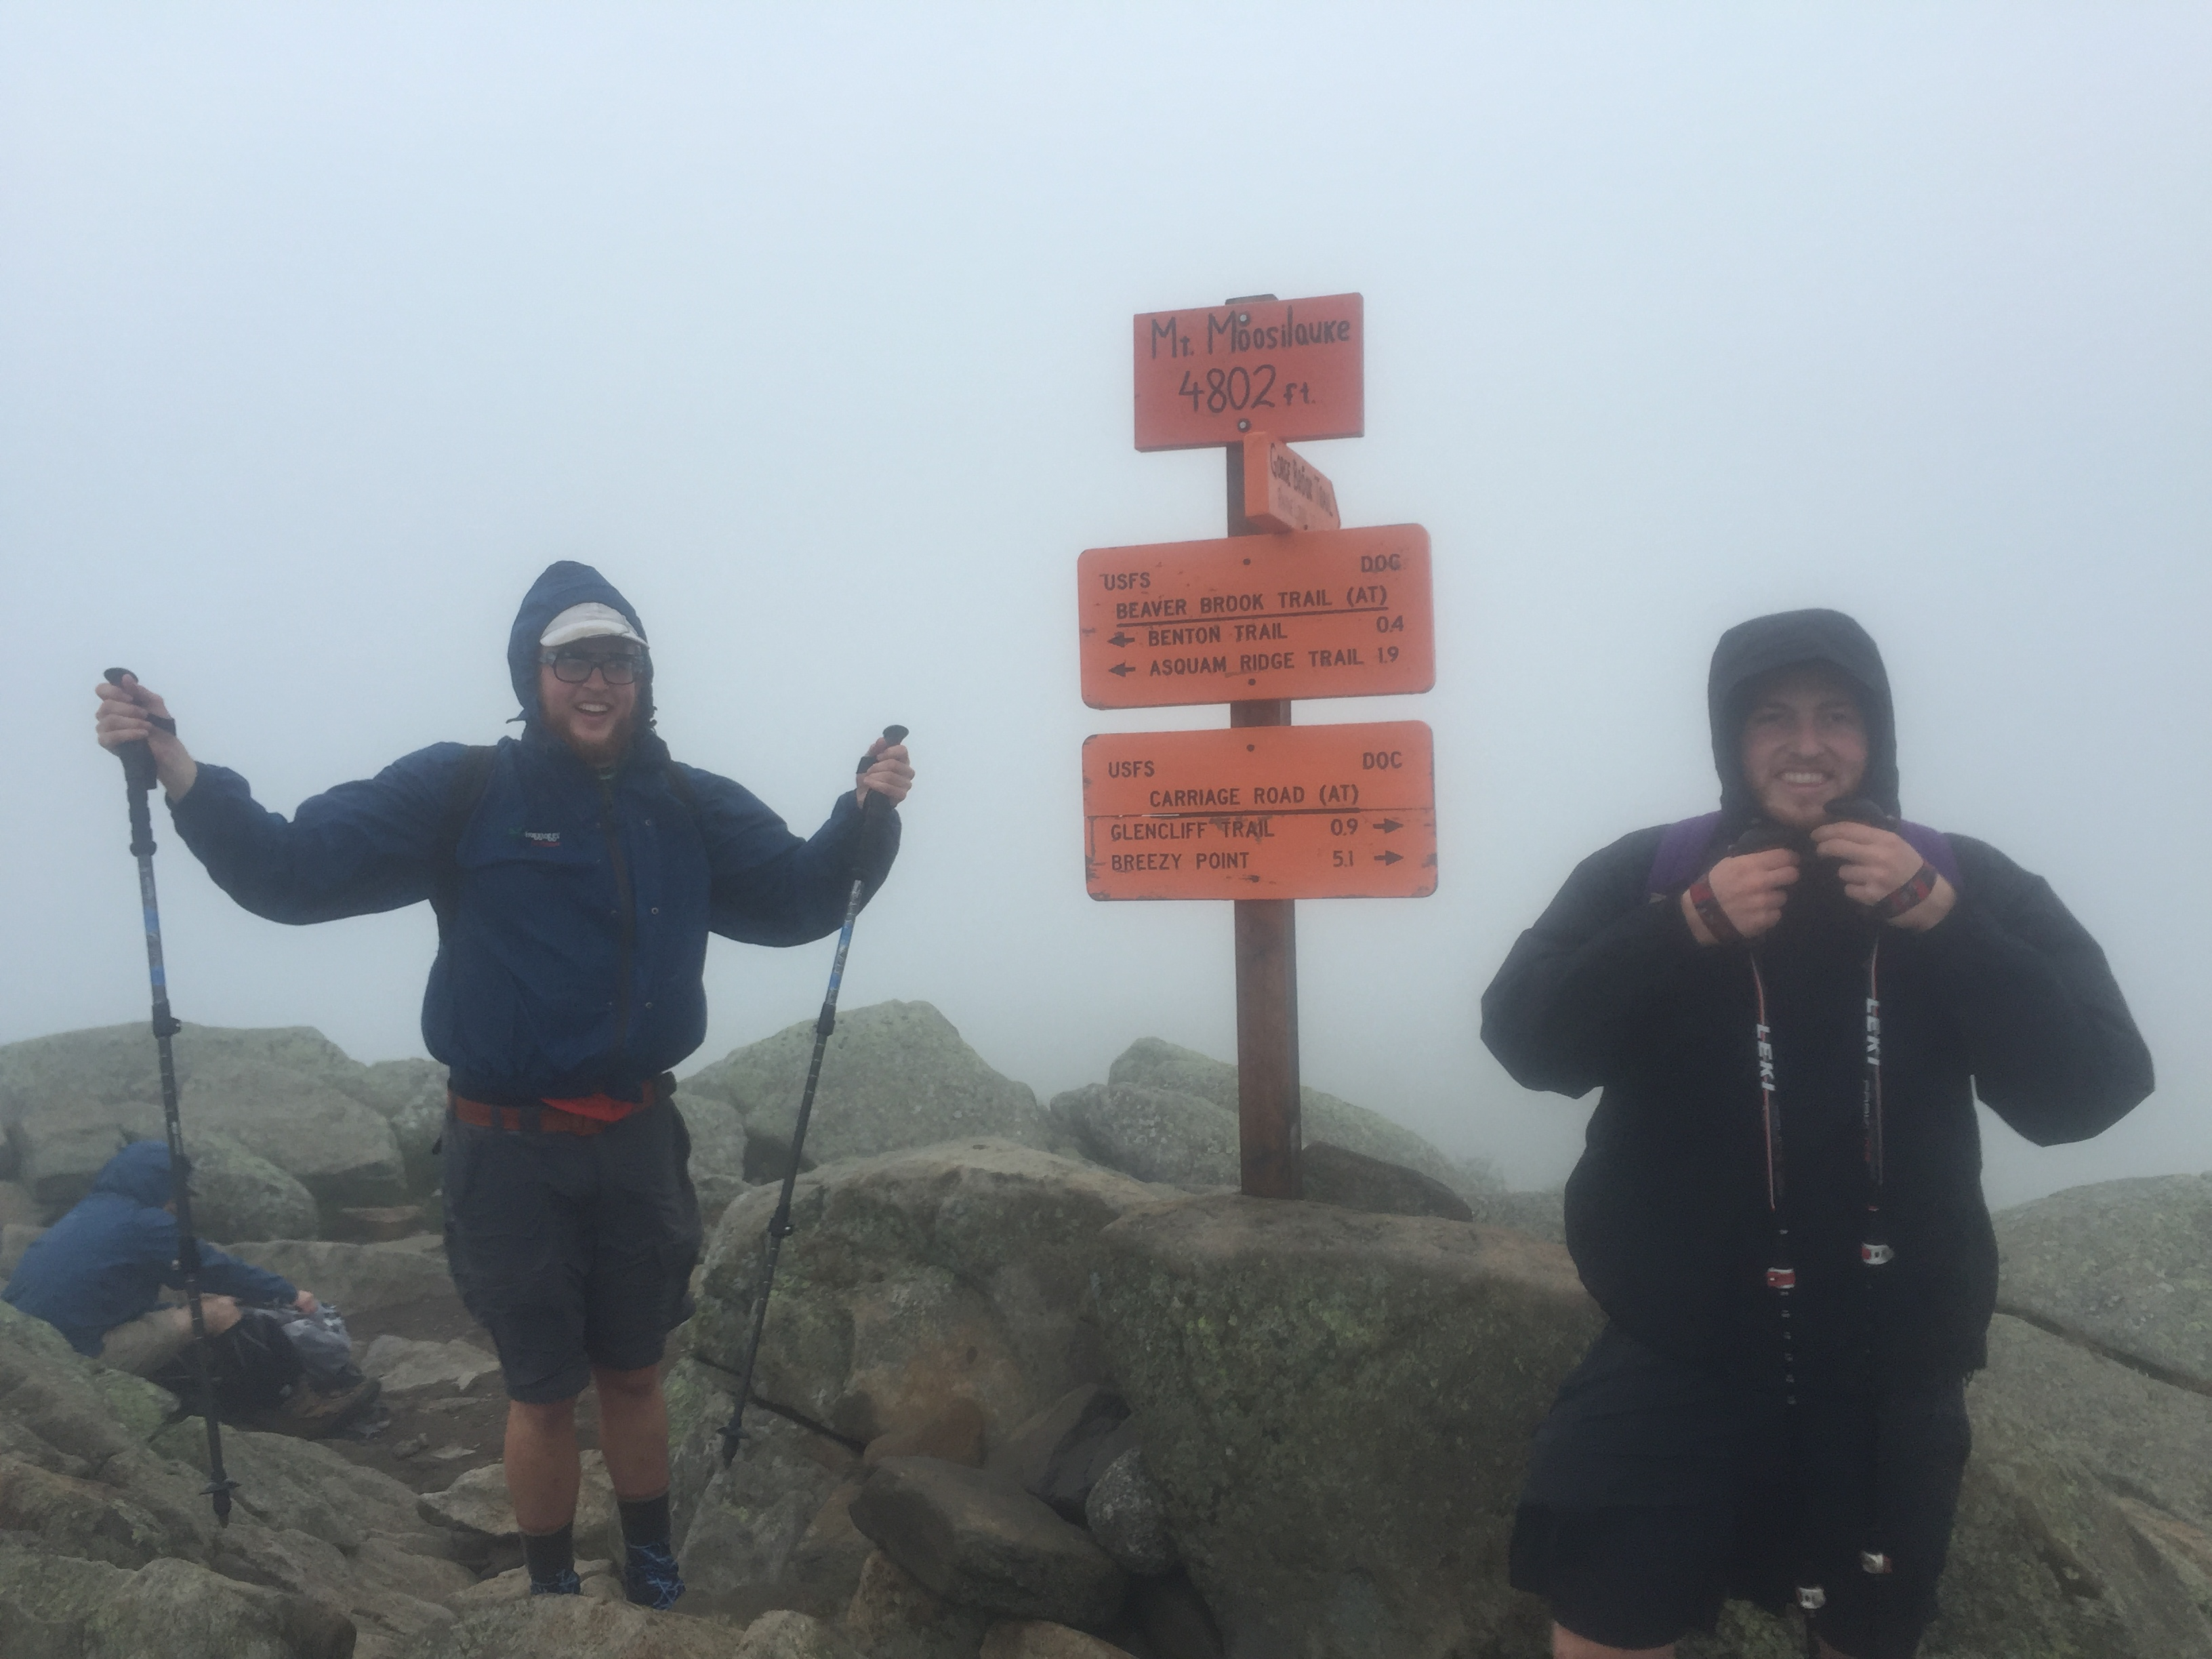 Unfortunately we didn't have any view on the top of Moosealauki, but it was incredibly windy!